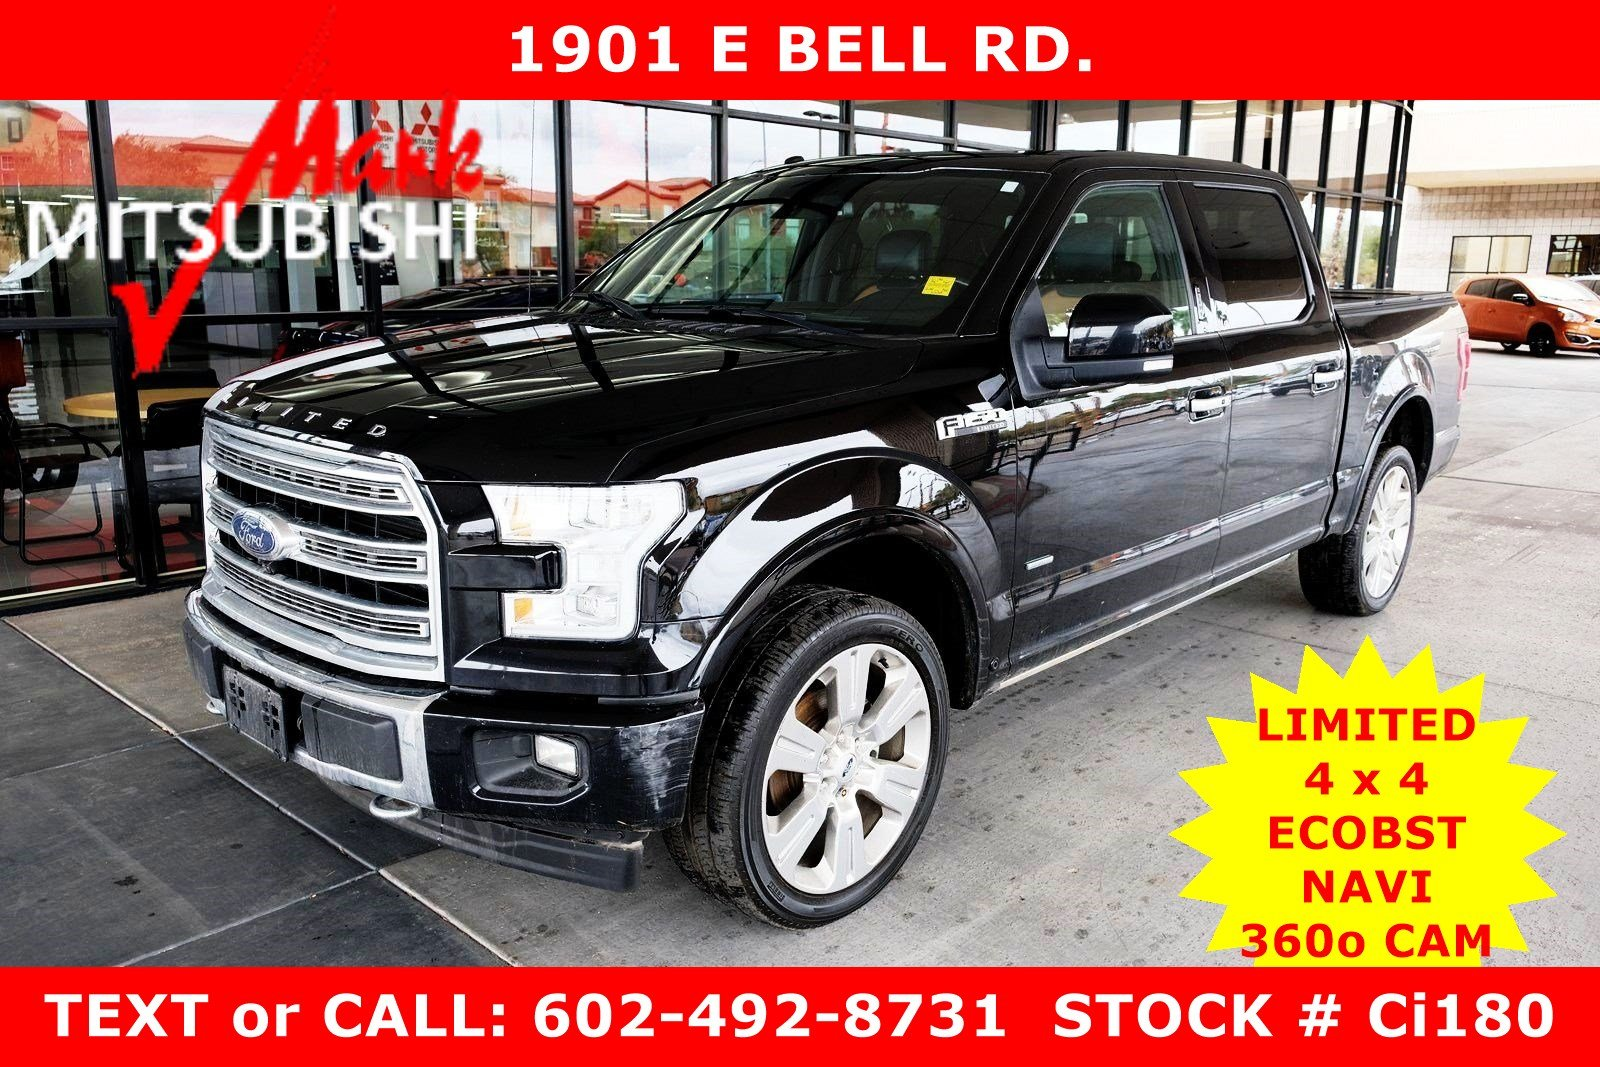 Pre-Owned 2017 Ford F-150 Limited 4 x 4 ECO